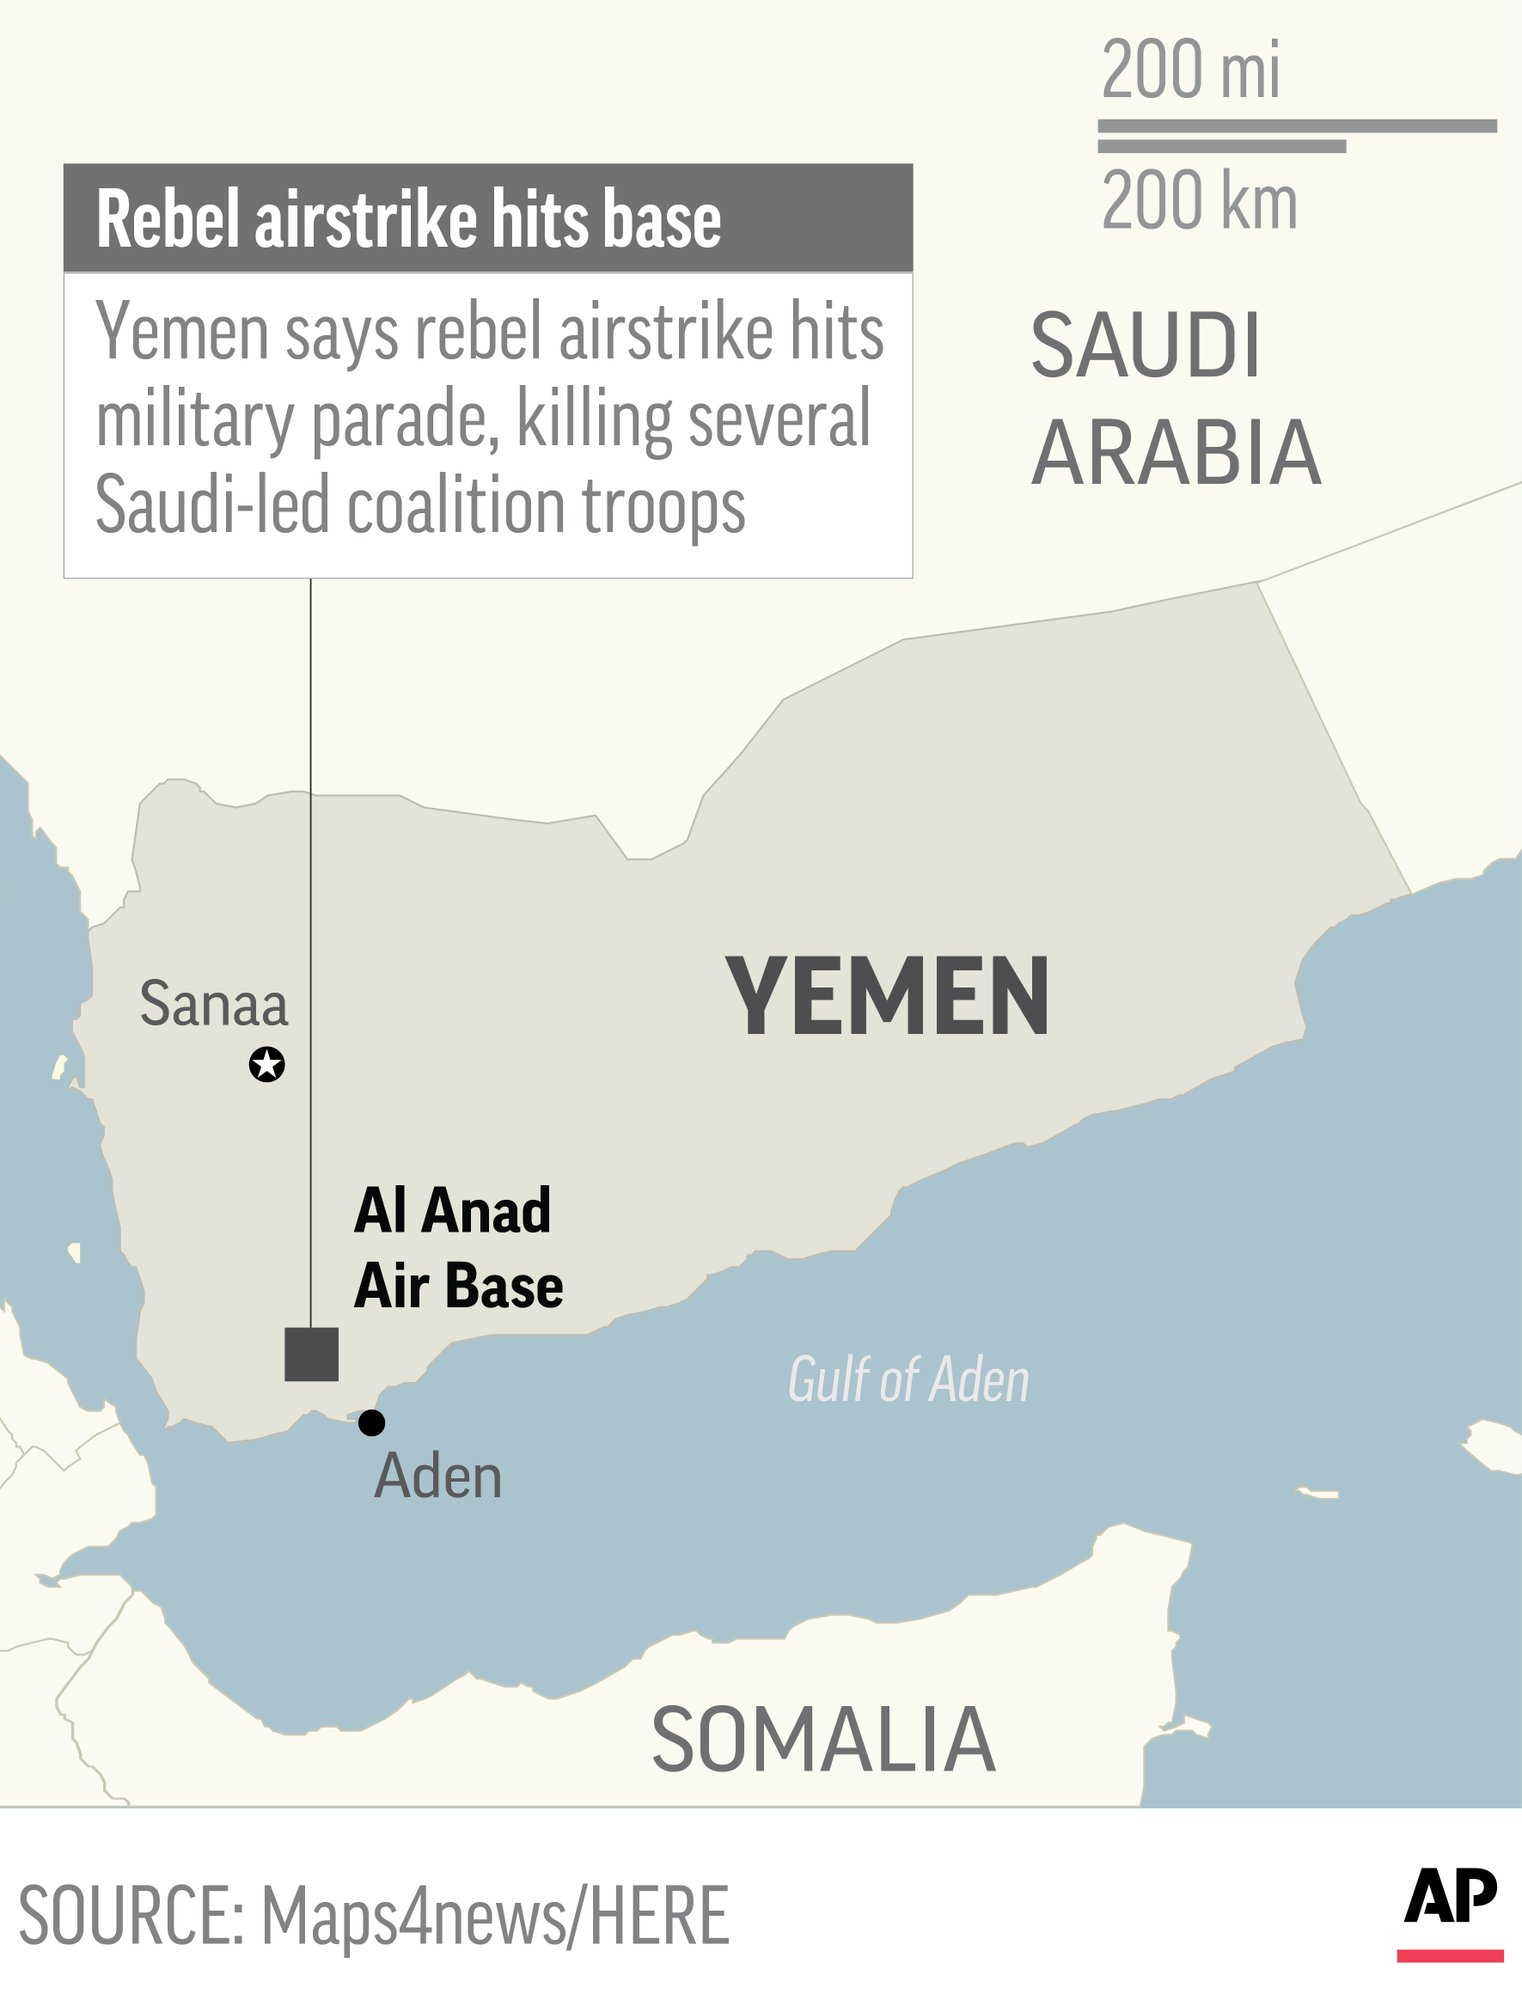 Bomb-laden rebel drone kills 6 at Yemen military parade